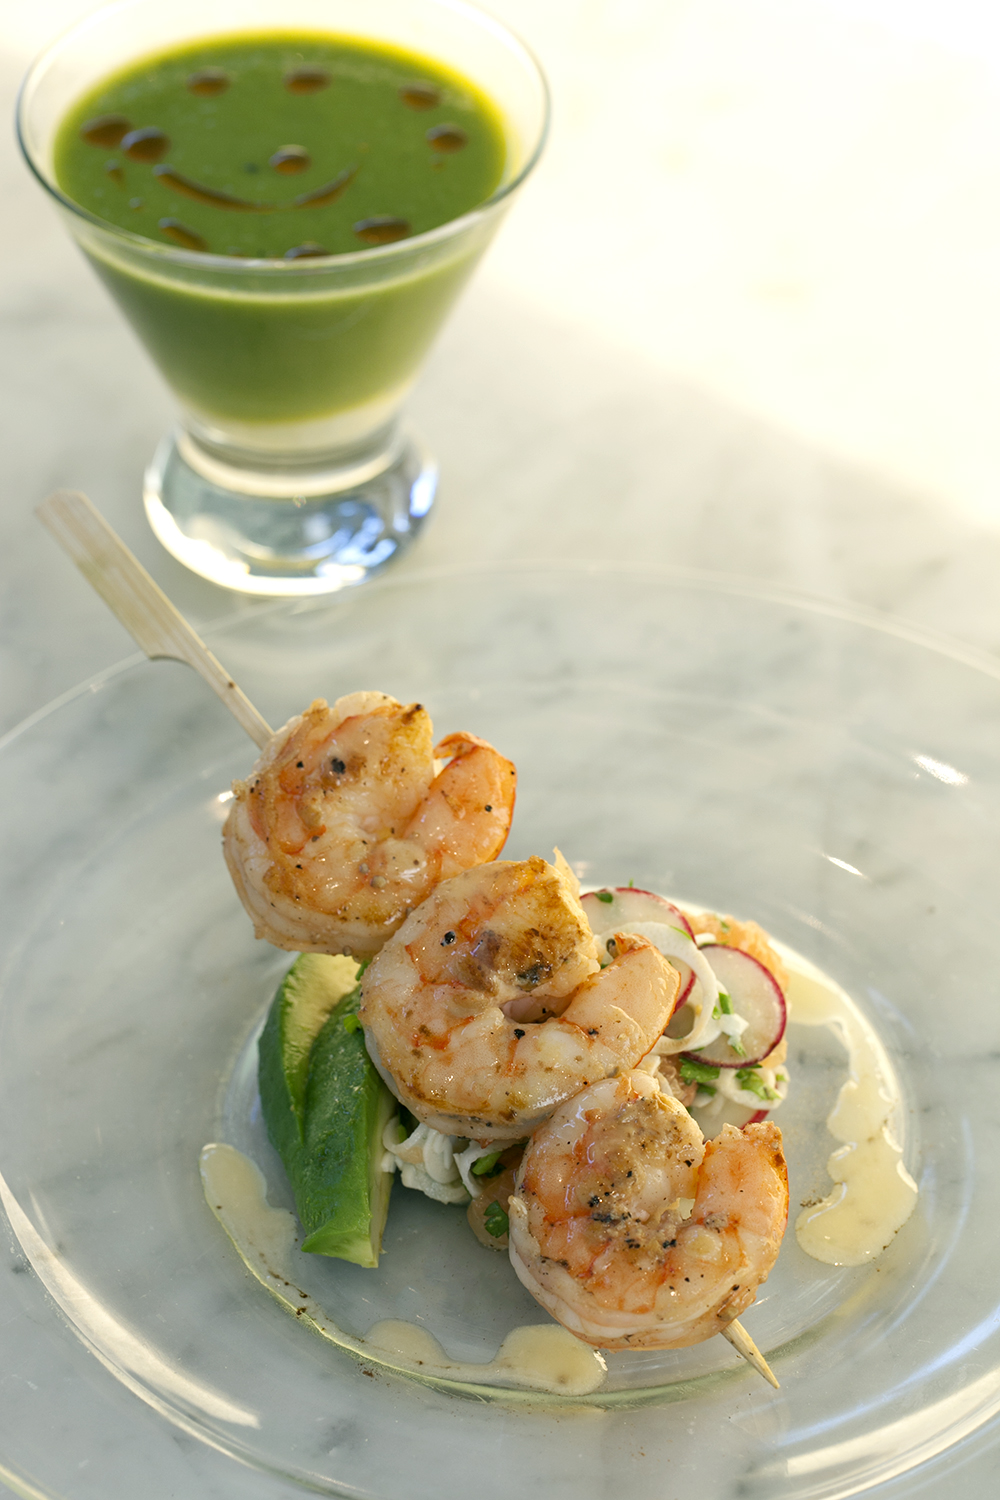 Purée of asparagus soup with goat cheese flan and harissa oil served with grilled wild shrimp with hearts of palm, avocado and grapefruit